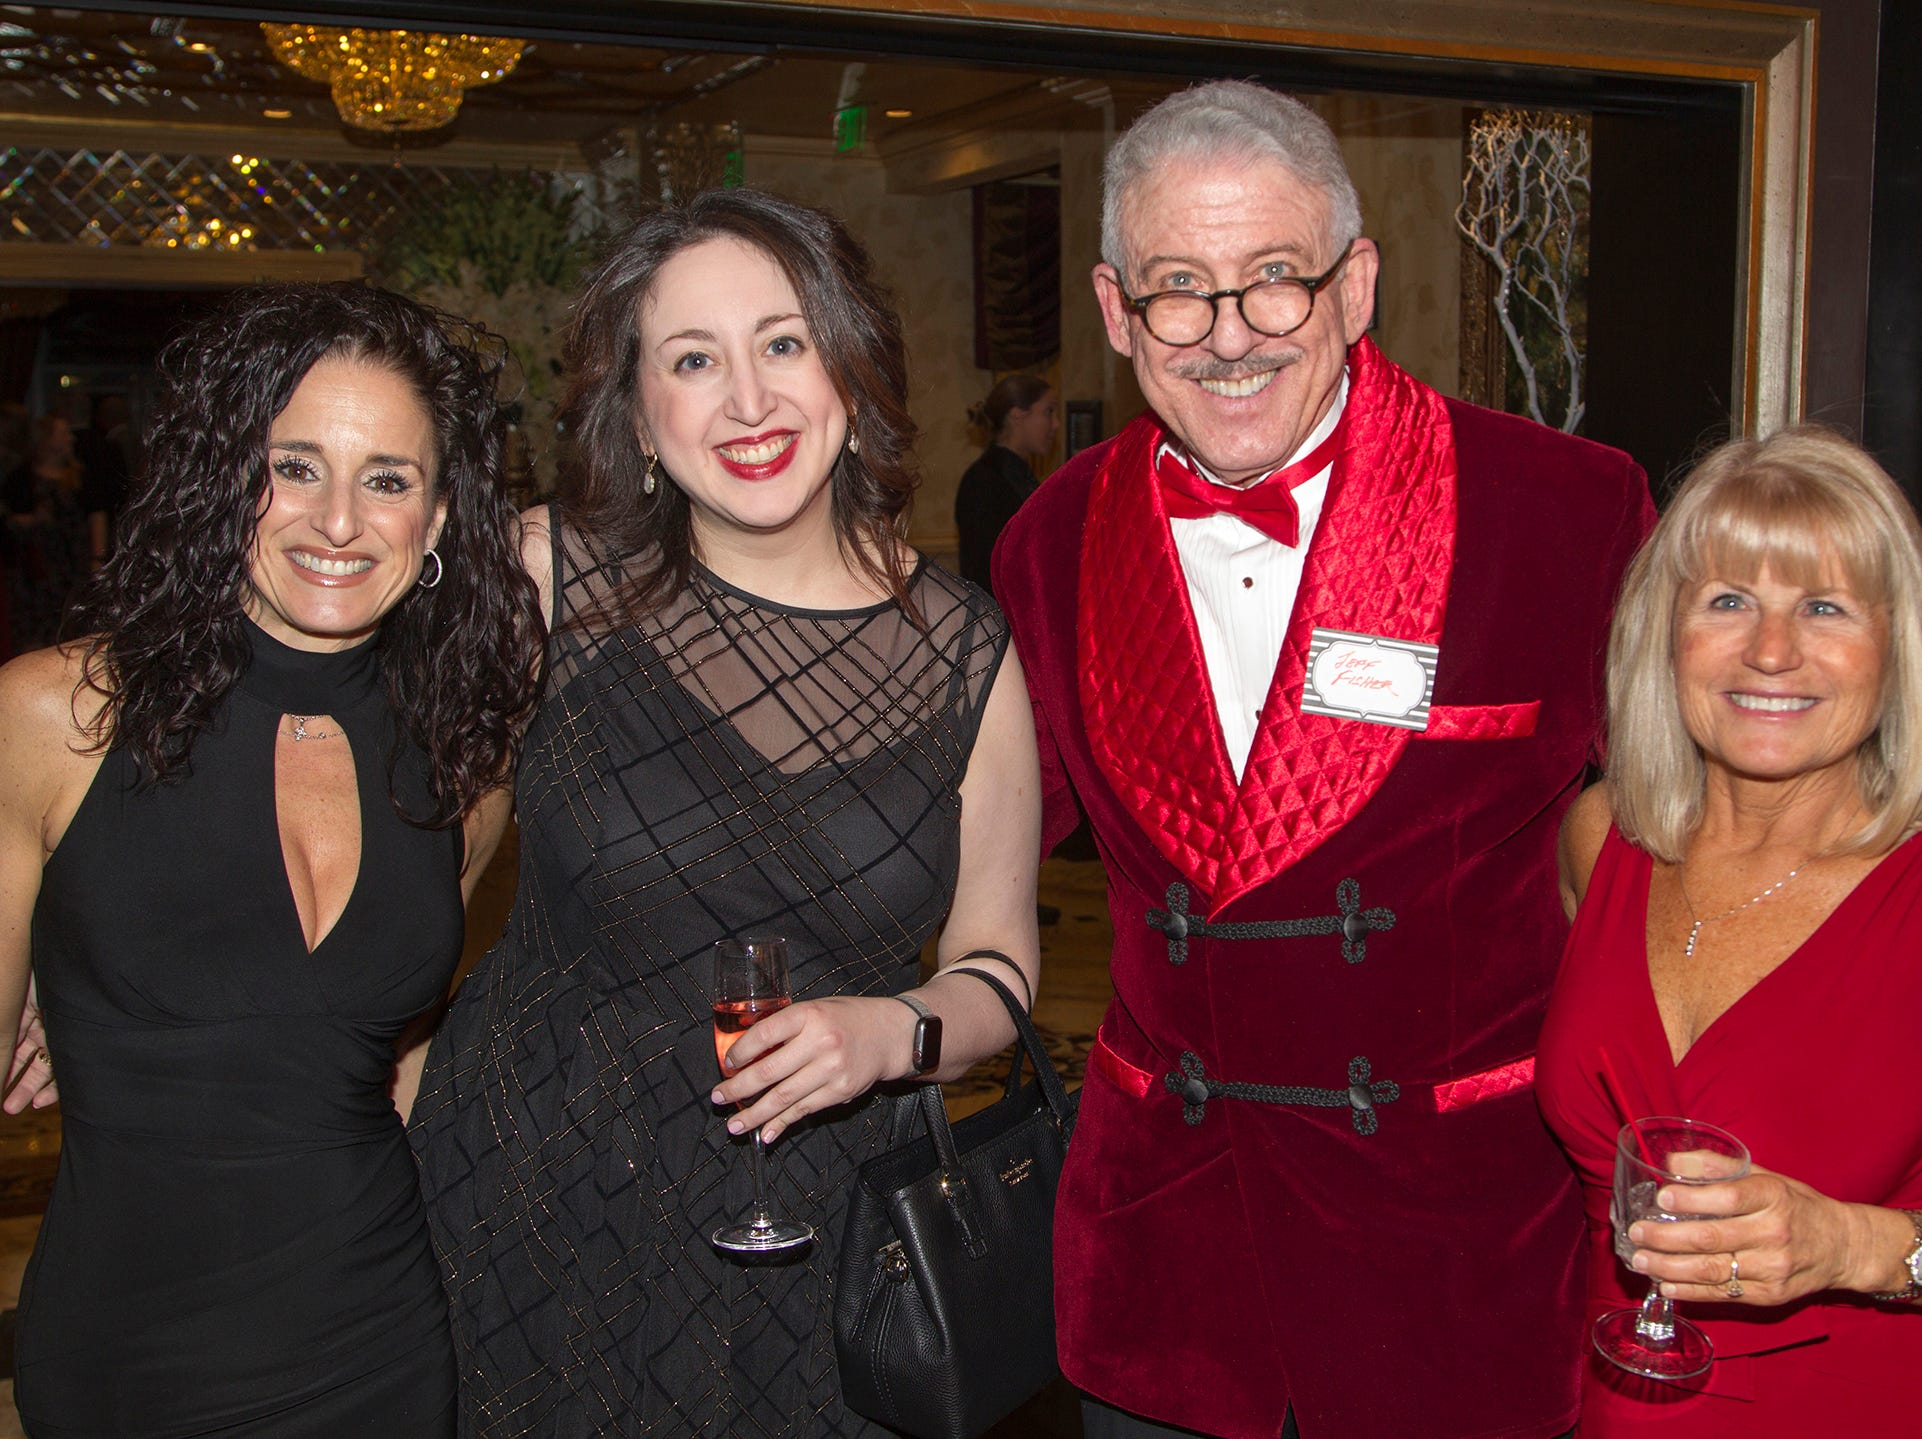 Alison Sharkey, Kate Fisher, Dr.Jeff Fisher, Diane Lento. Institute for Educational Achievement (IEA) held its annual Dinner Dance at Seasons in Washington Township. 02/02/2019